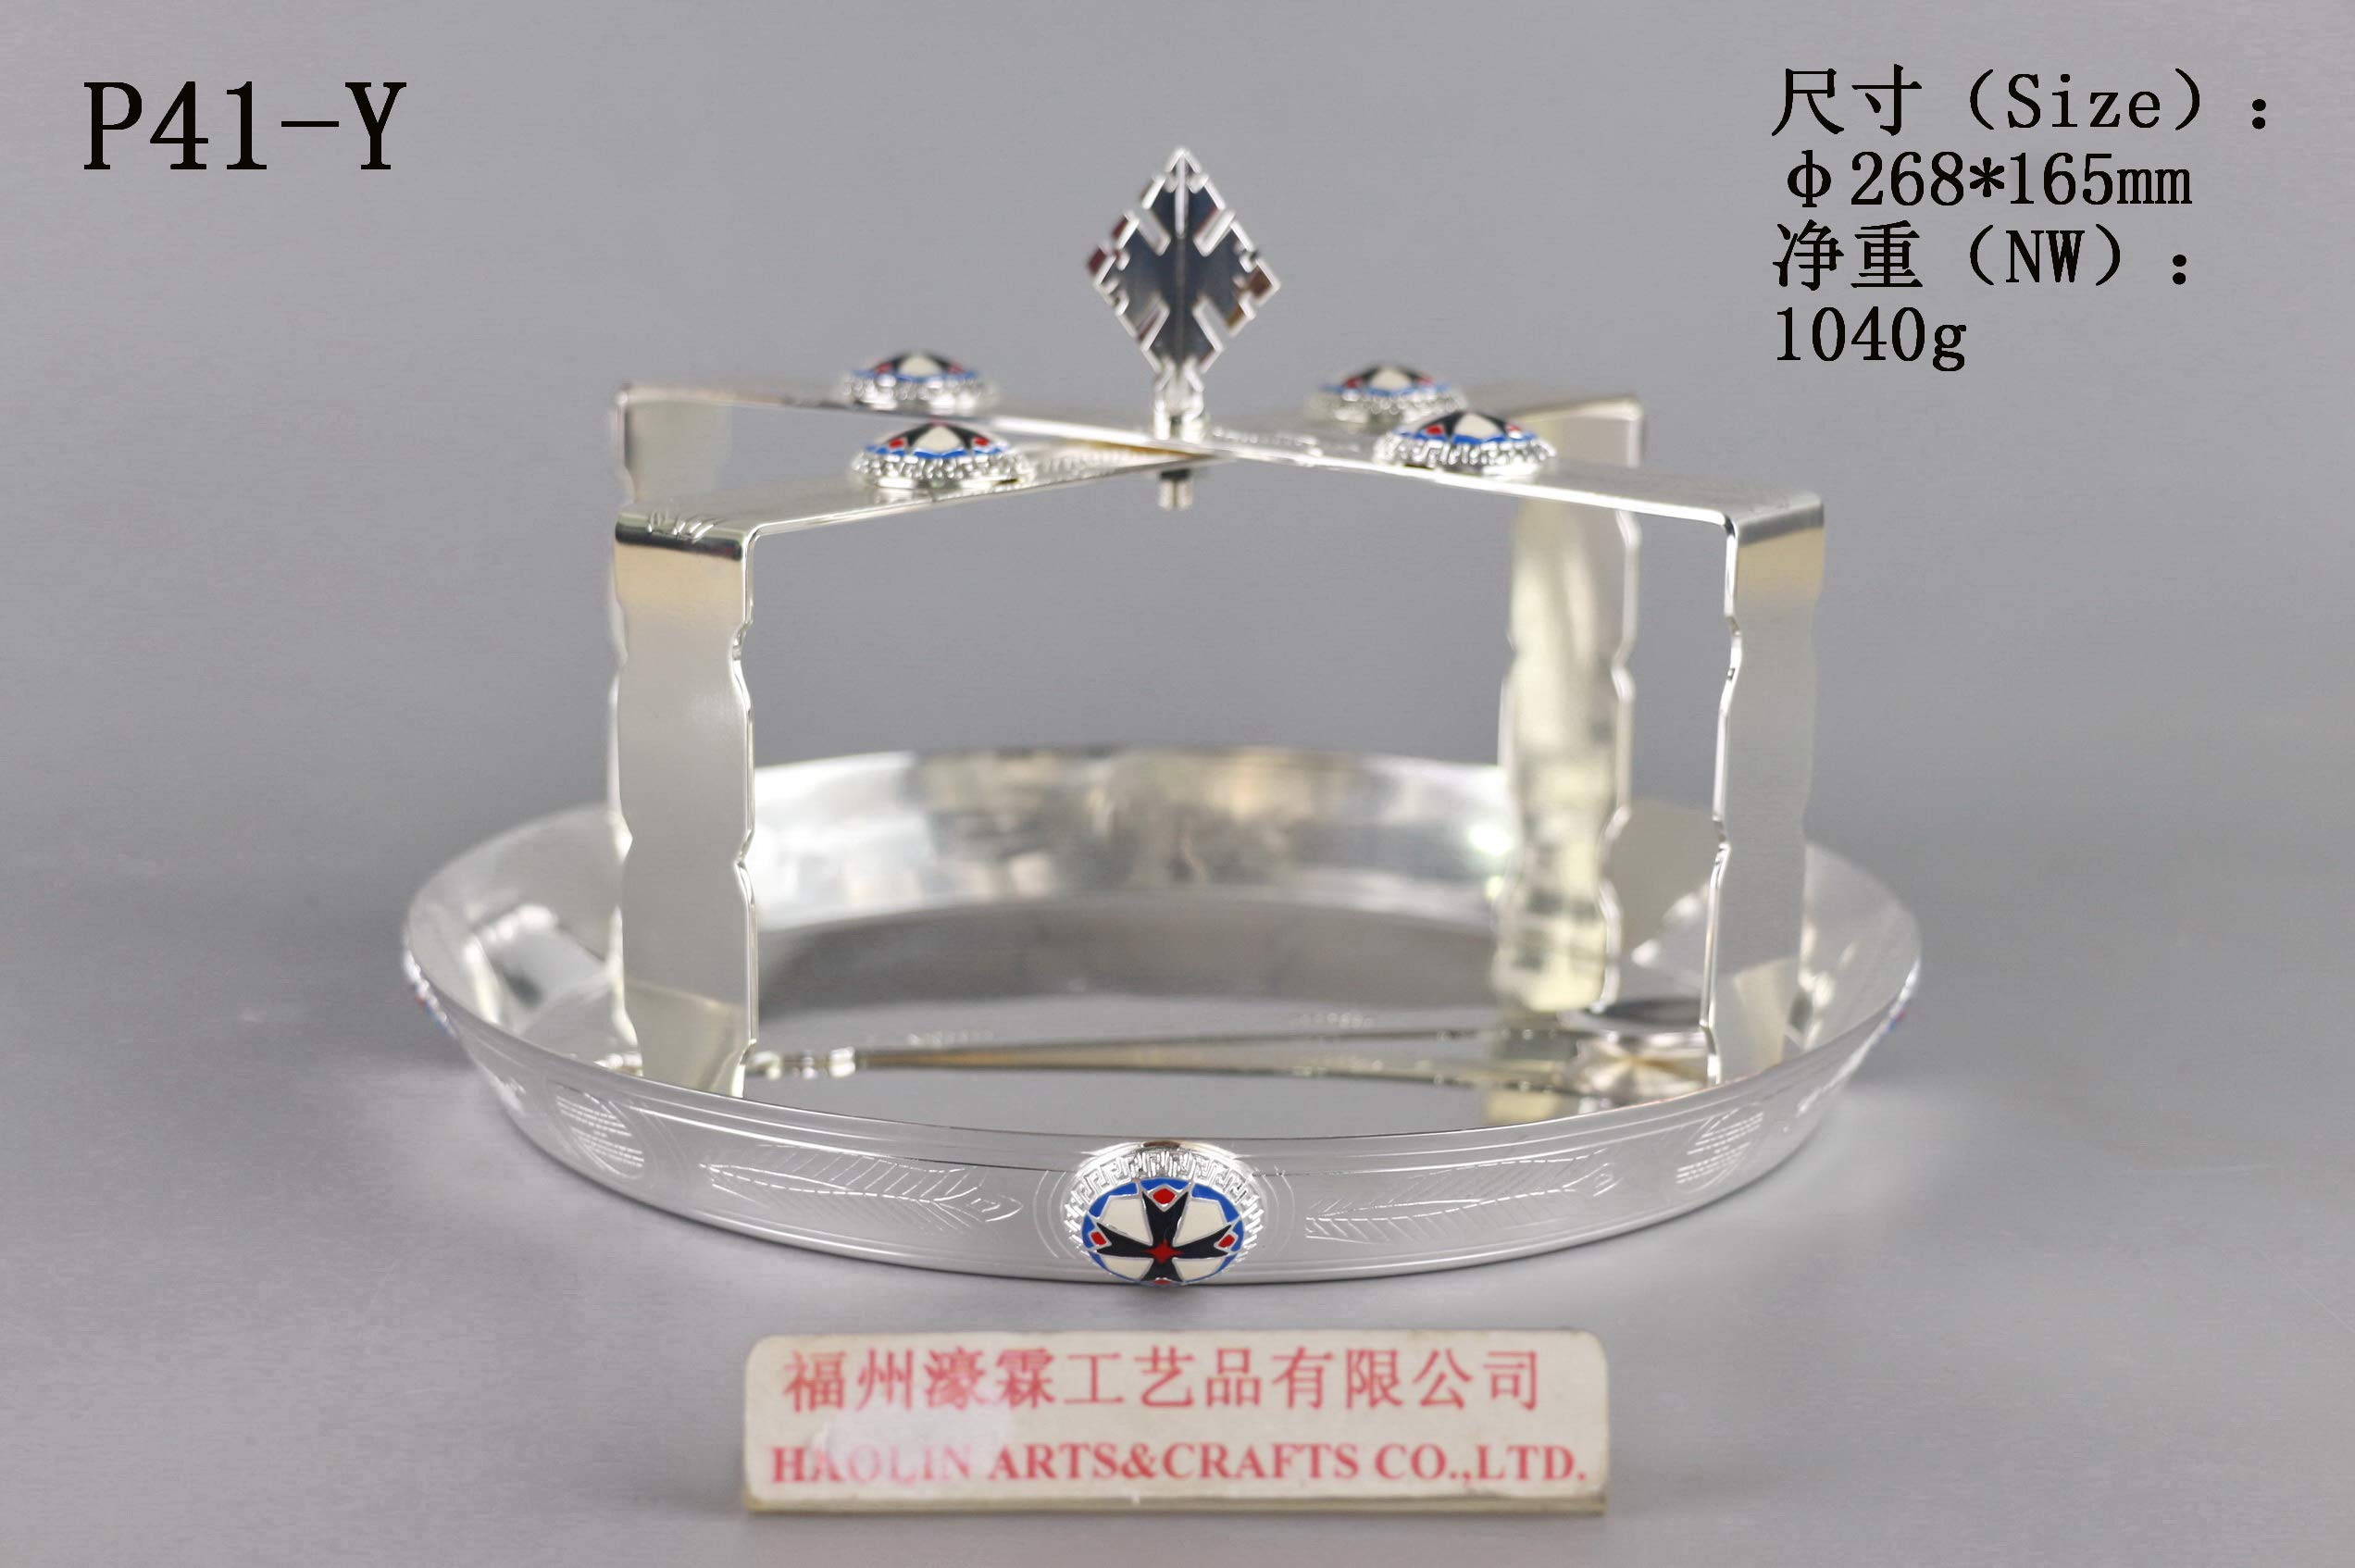 Brass Plate Altar Religion P41-Y Our Company Have 101 Kinds of Chalice and Plate for Your Choice.